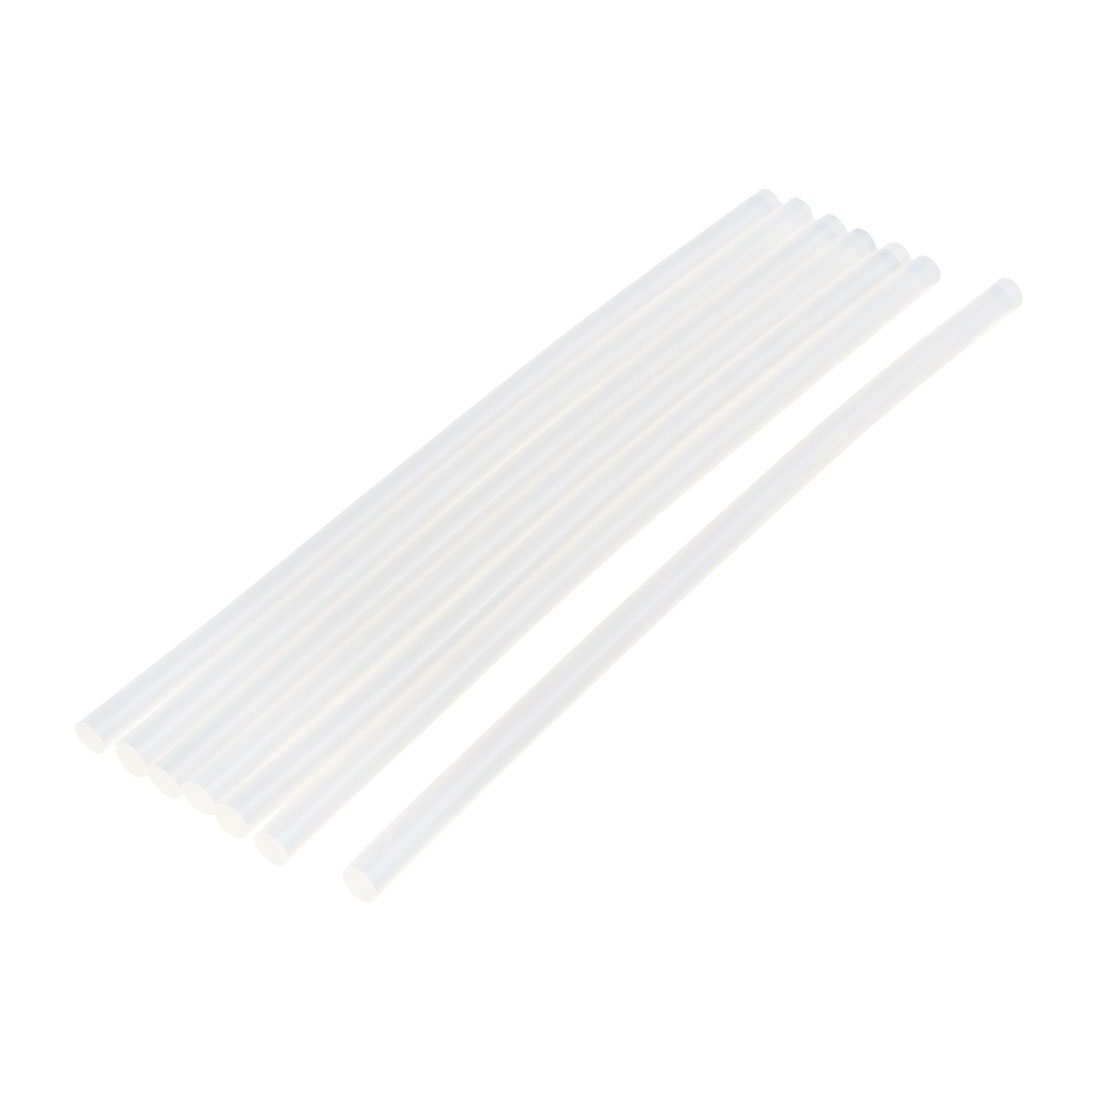 7 Pcs 7mm x 190mm Hot Melt Glue Adhesive Stick Clear for Electric Tool Heating Gun